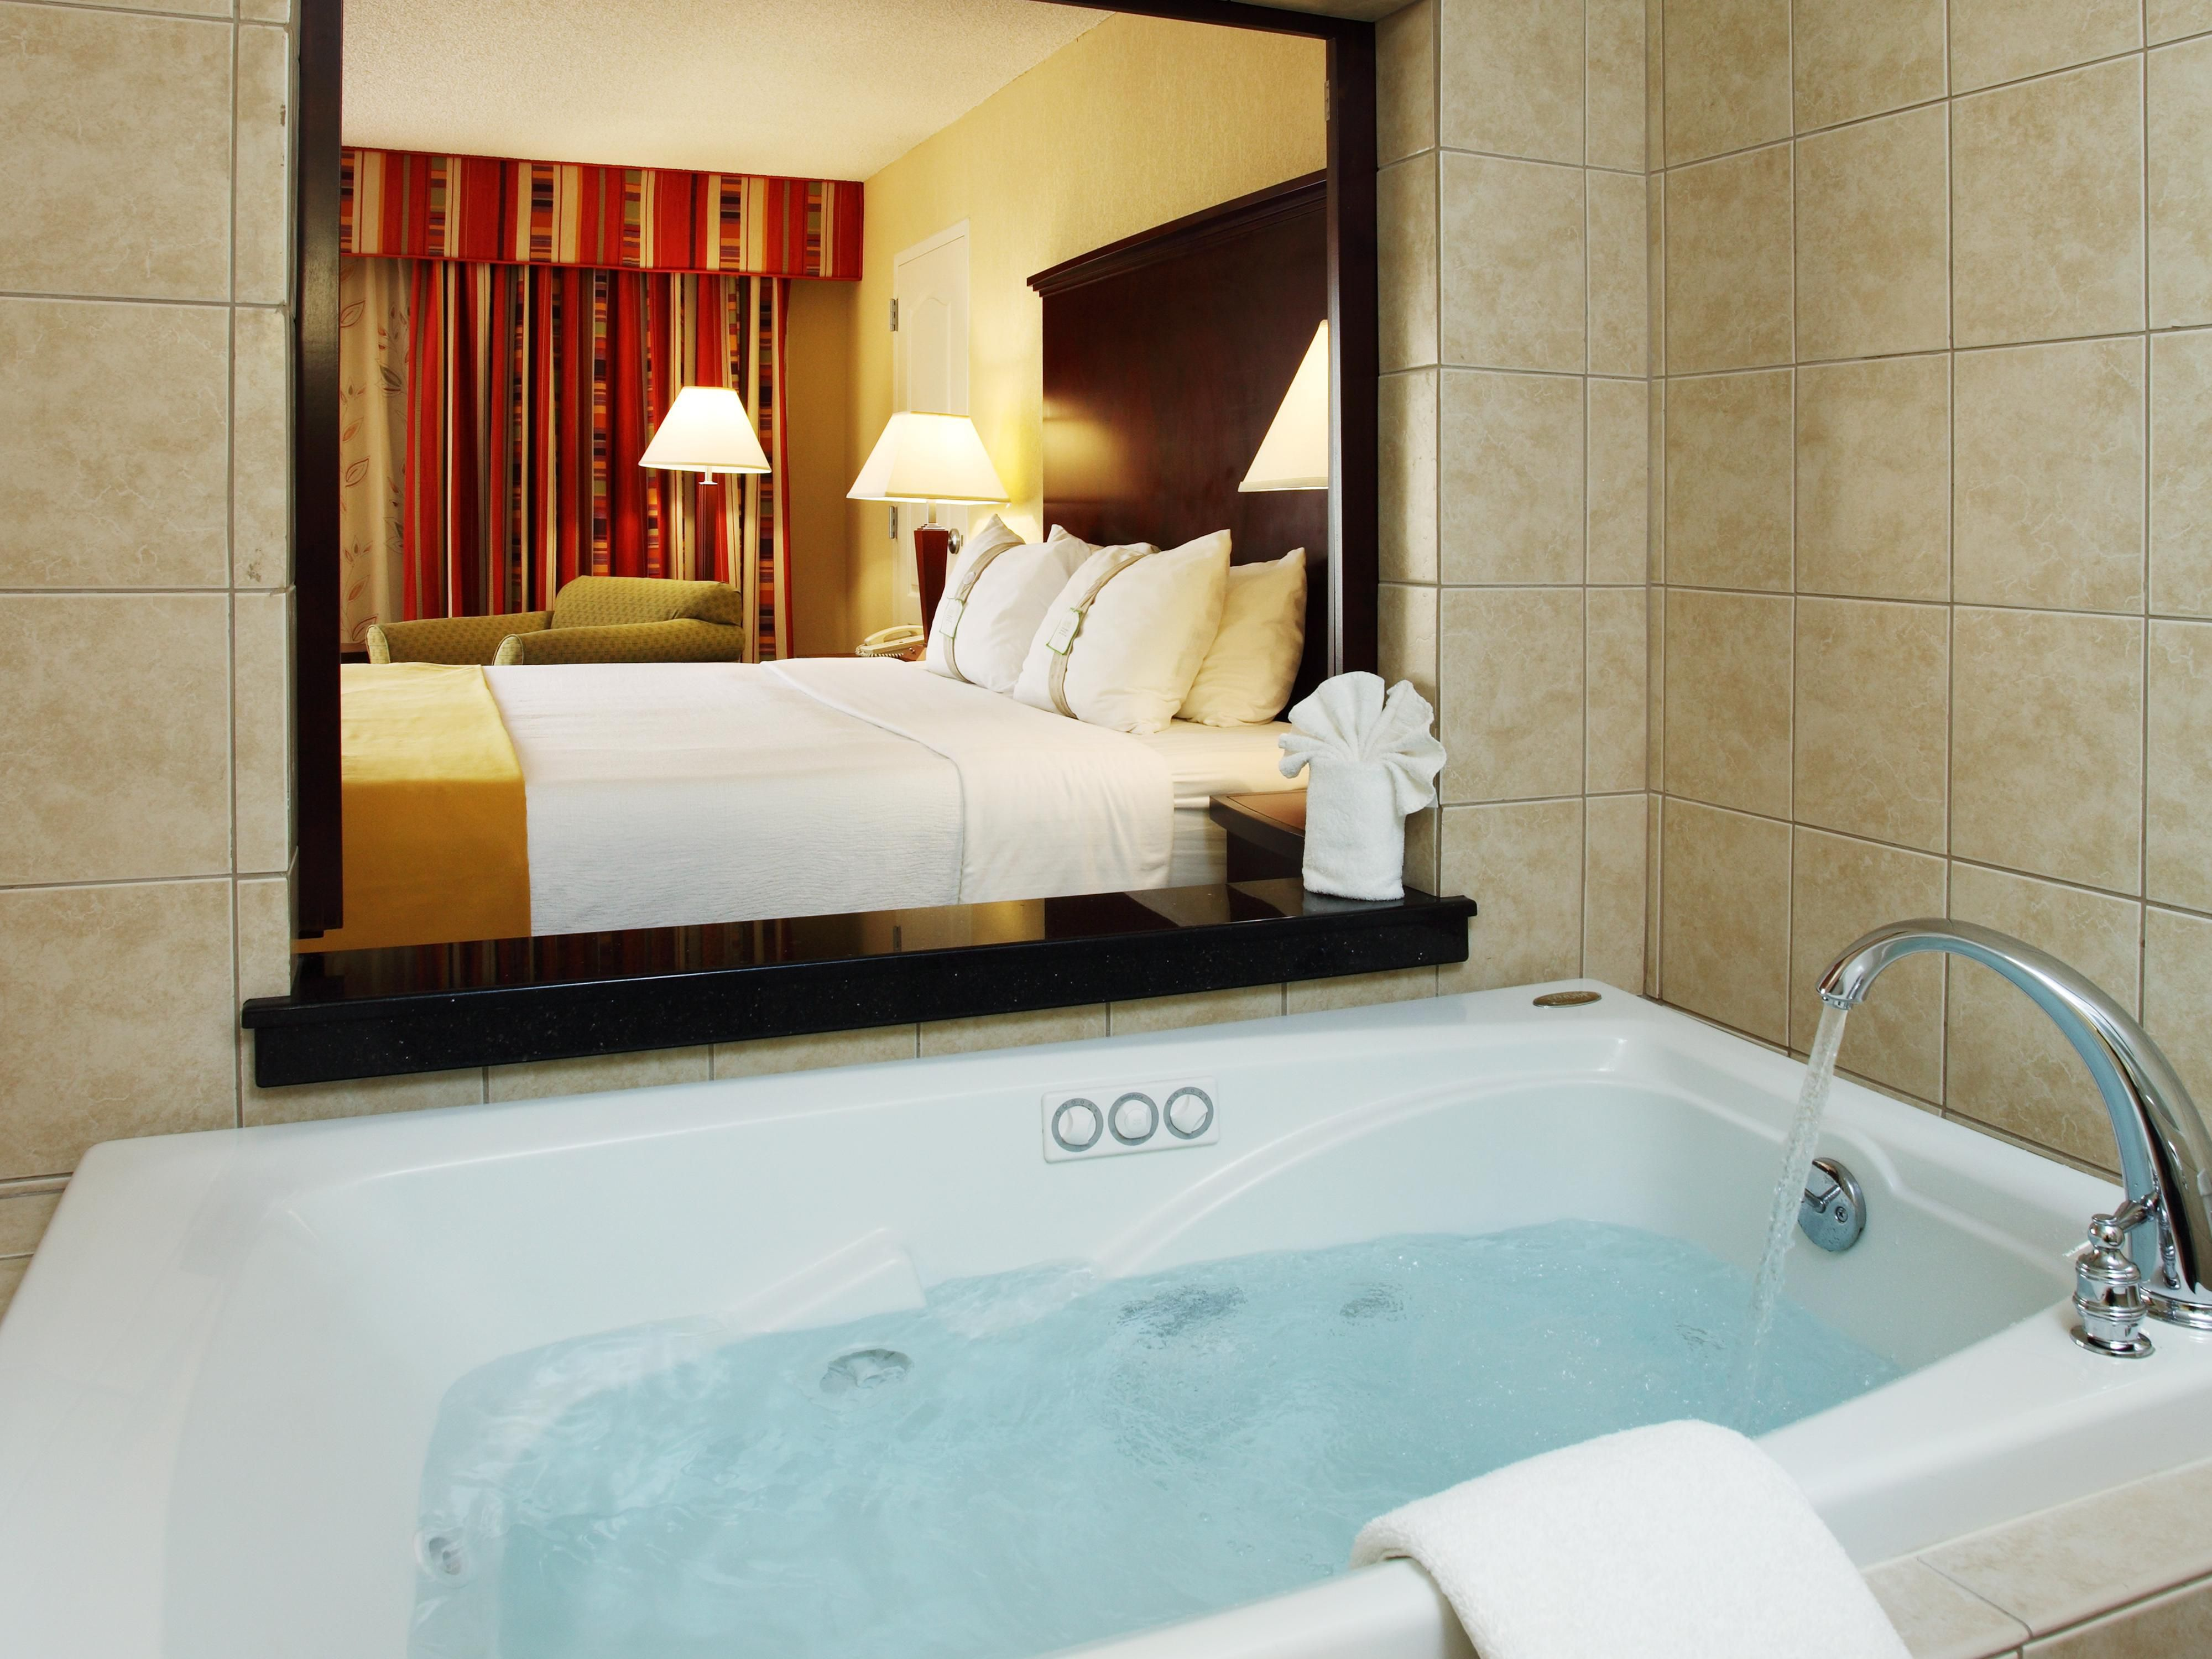 Jacuzzi Overlooking the Guest Room